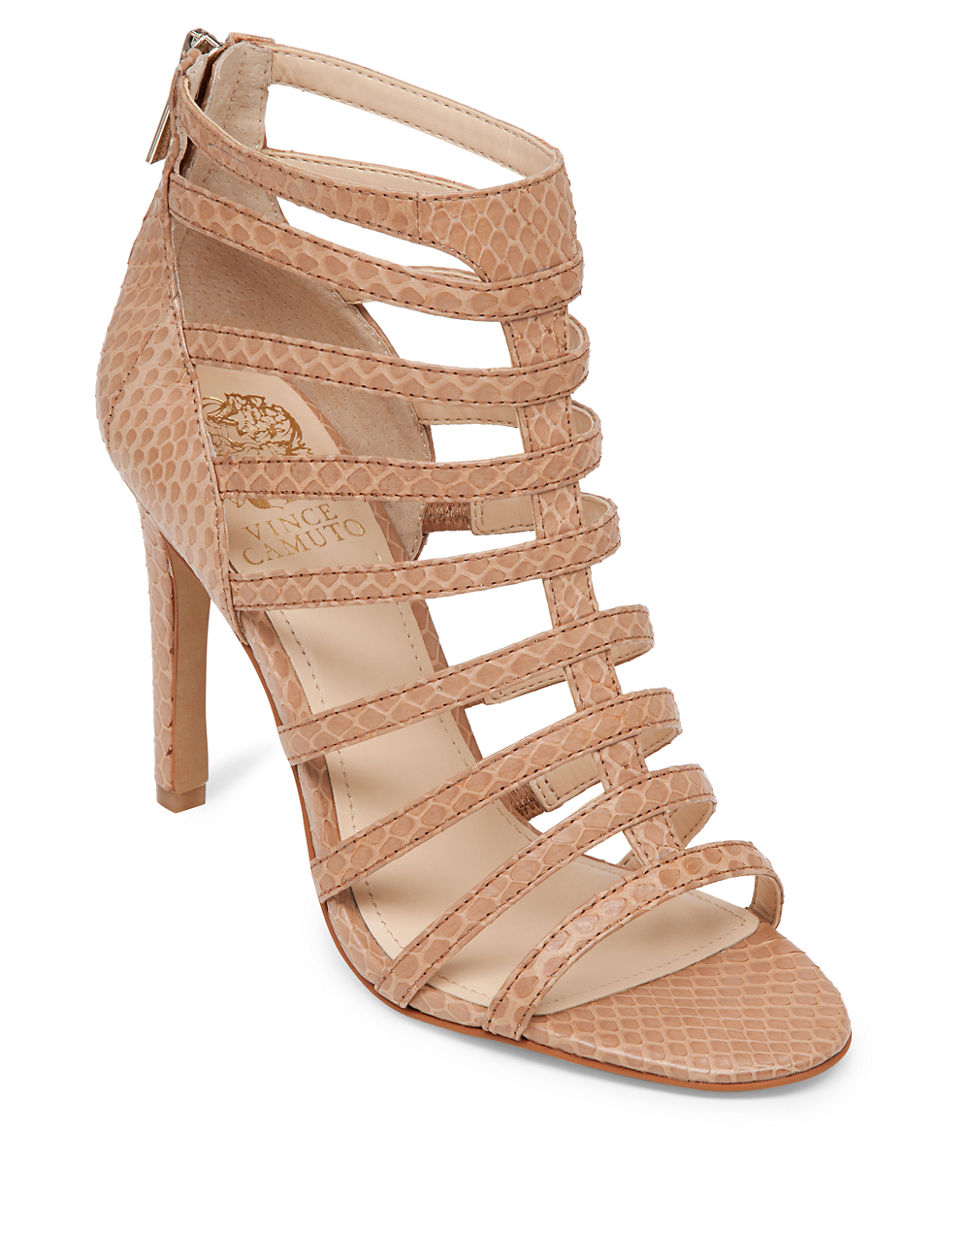 Vince Camuto Kamella Leather Strappy Open Toe Sandals In